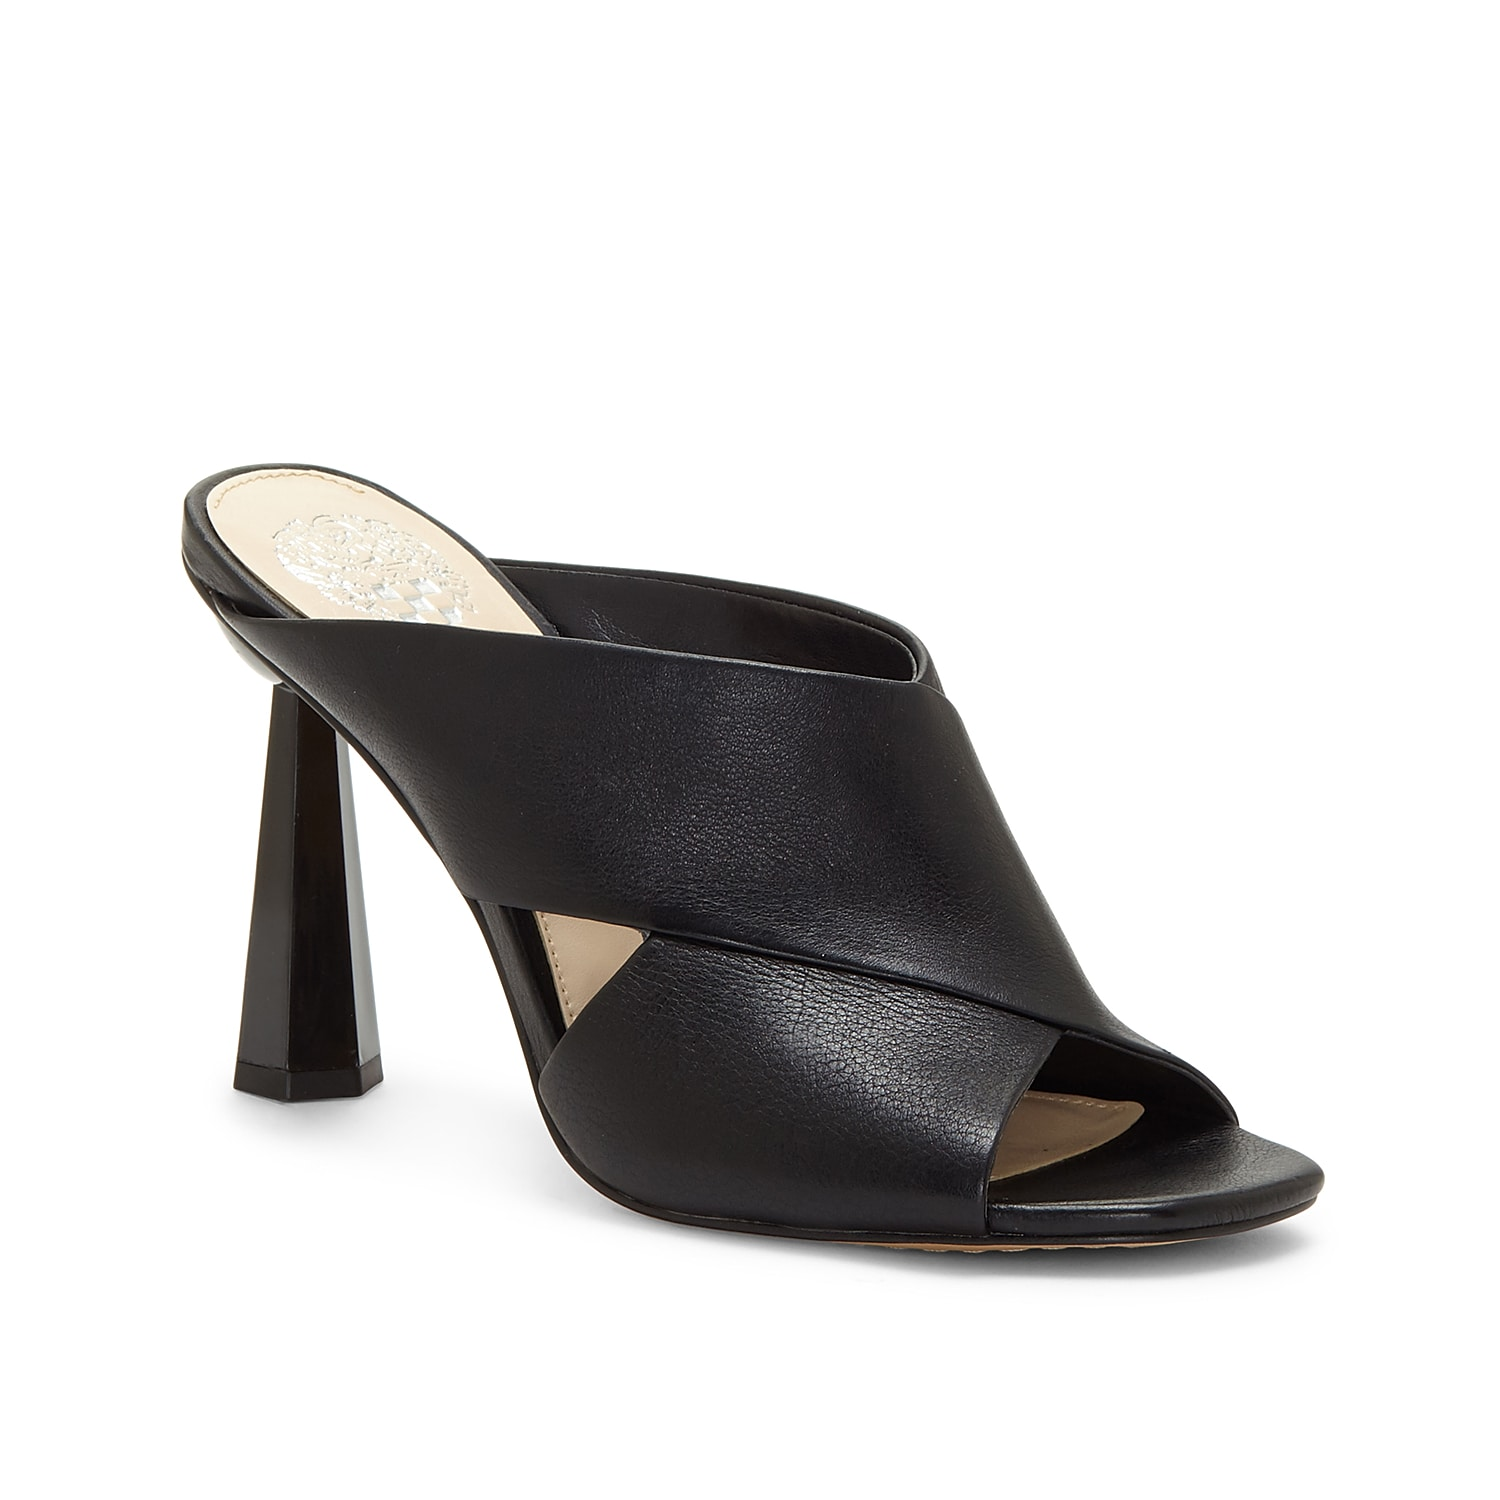 The Averessa X-band sandal from Vince Camuto is an absolute style delight. Its crisscross-strapped leather profile is elevated by a faceted geo-chic heel.